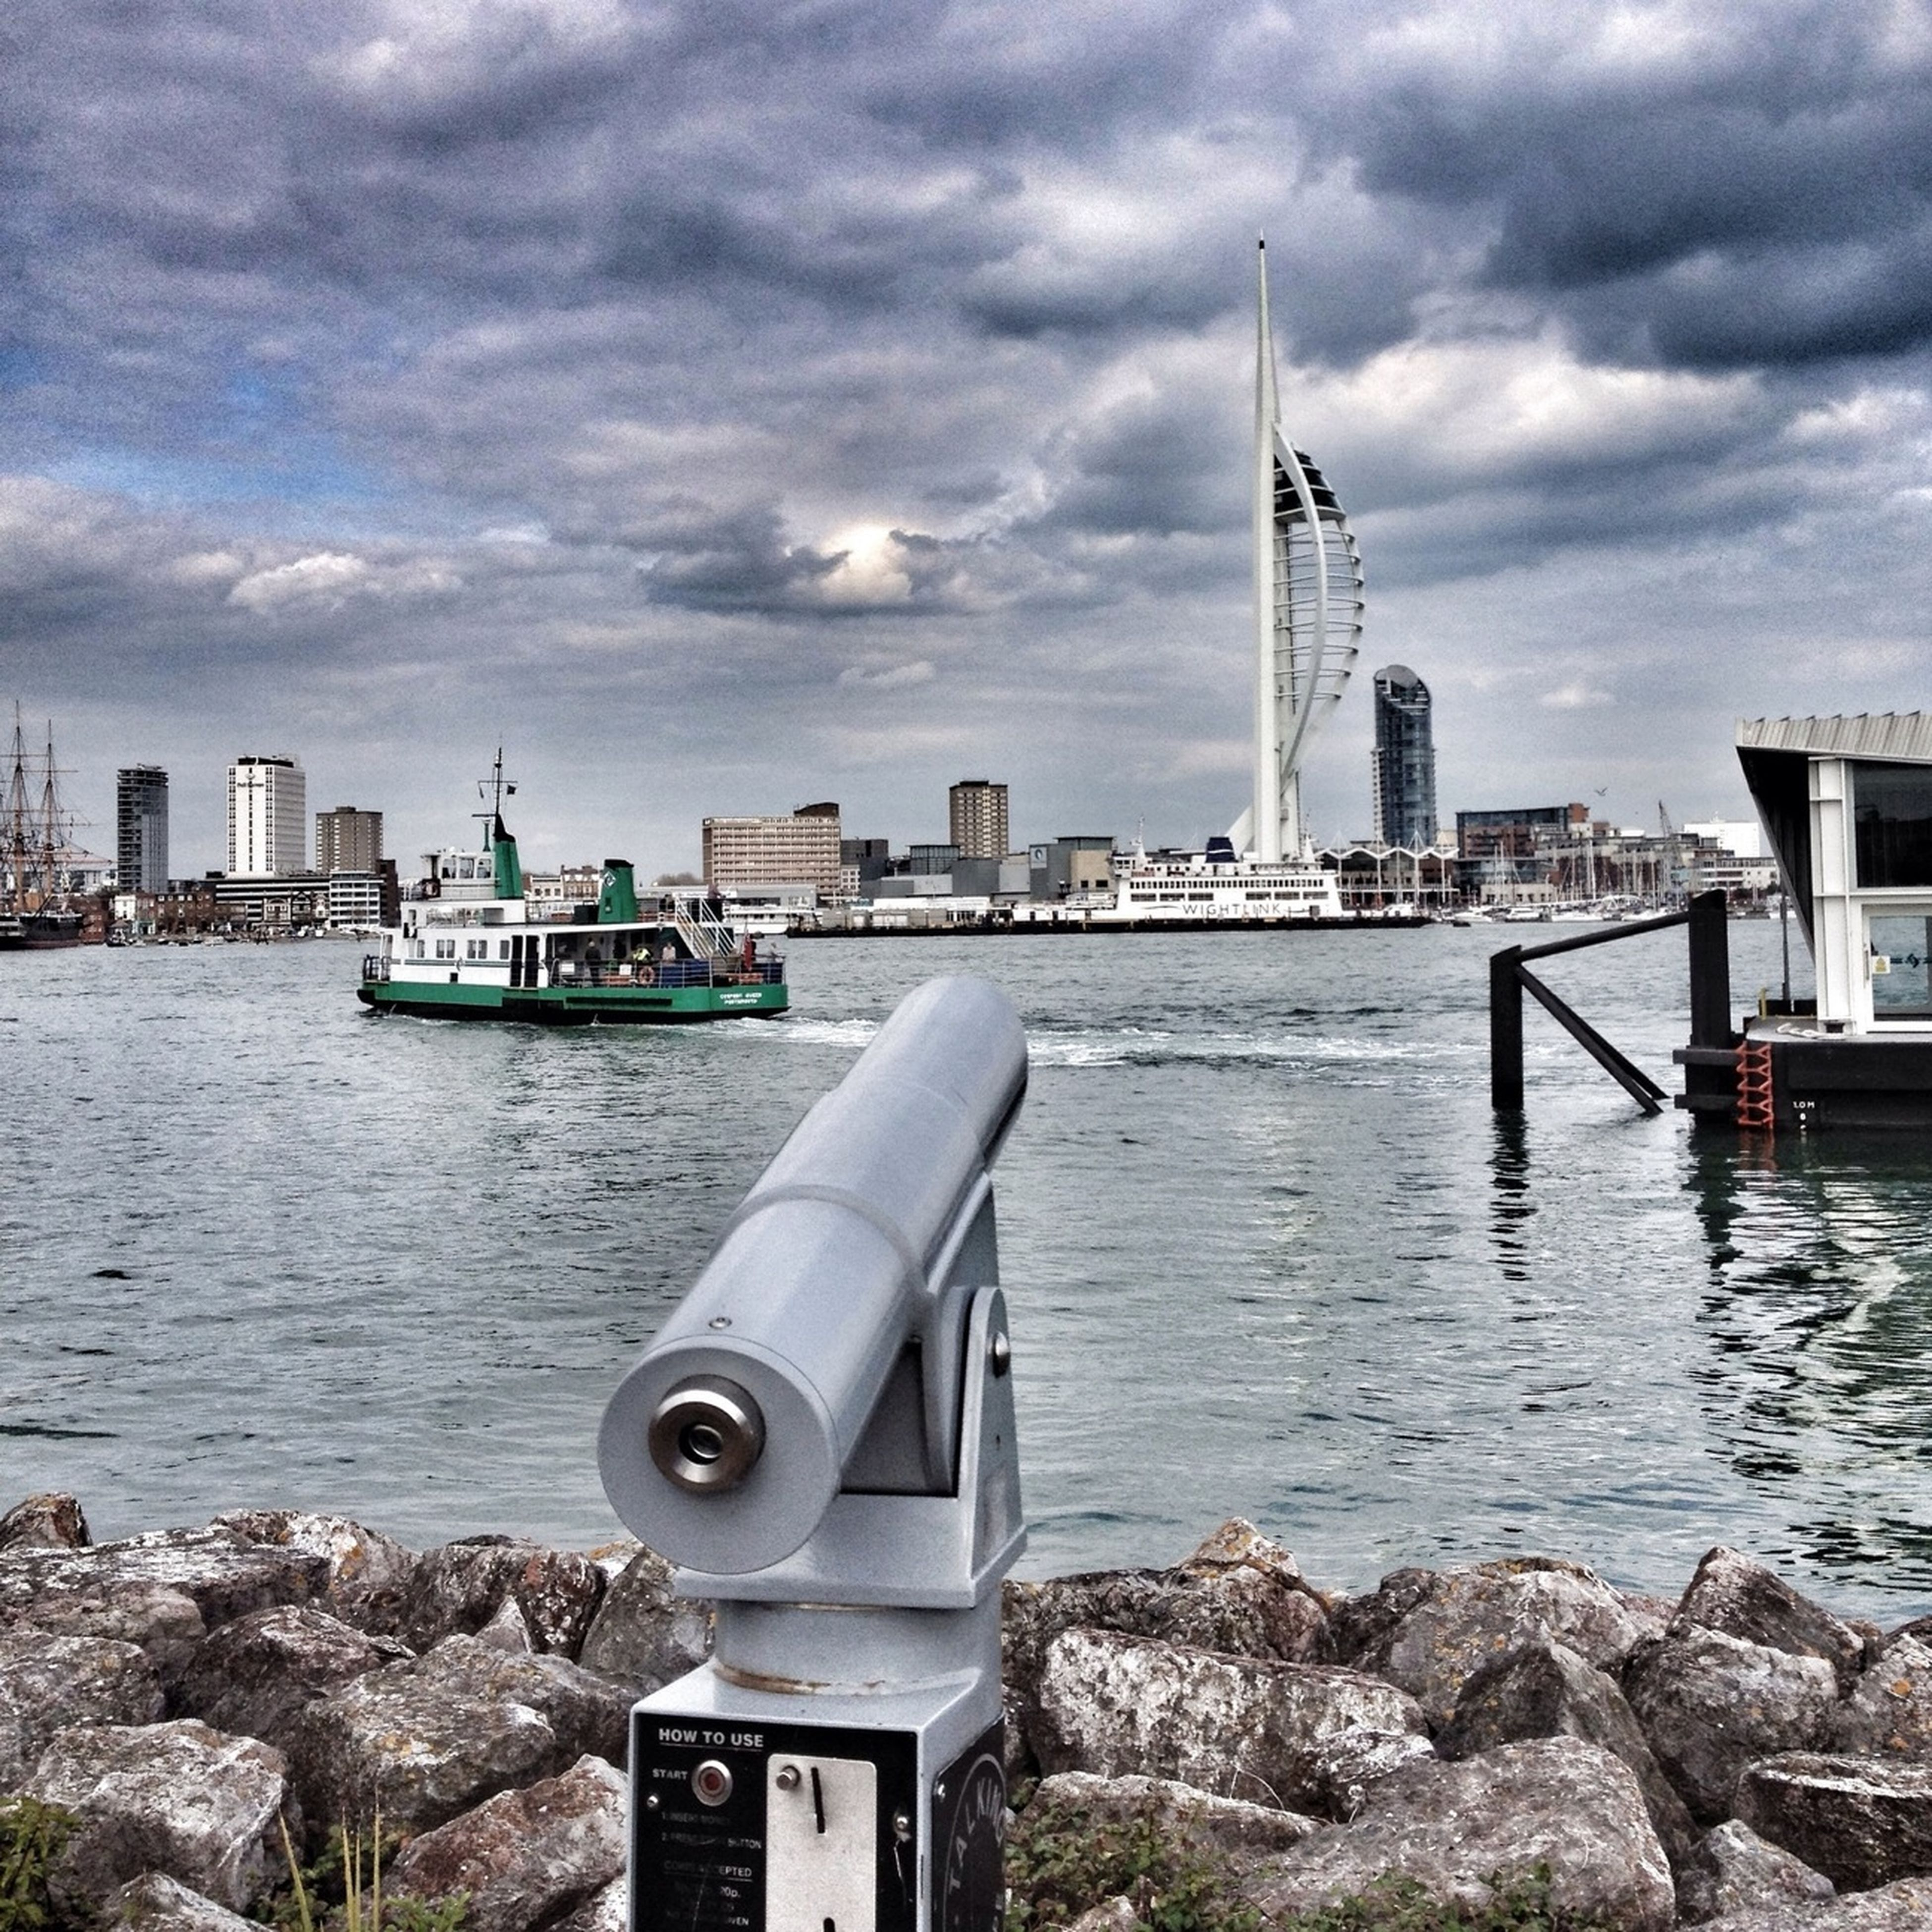 building exterior, architecture, built structure, sky, water, cloud - sky, city, tower, river, cloudy, sea, lighthouse, nautical vessel, cloud, transportation, tall - high, cityscape, travel destinations, day, guidance